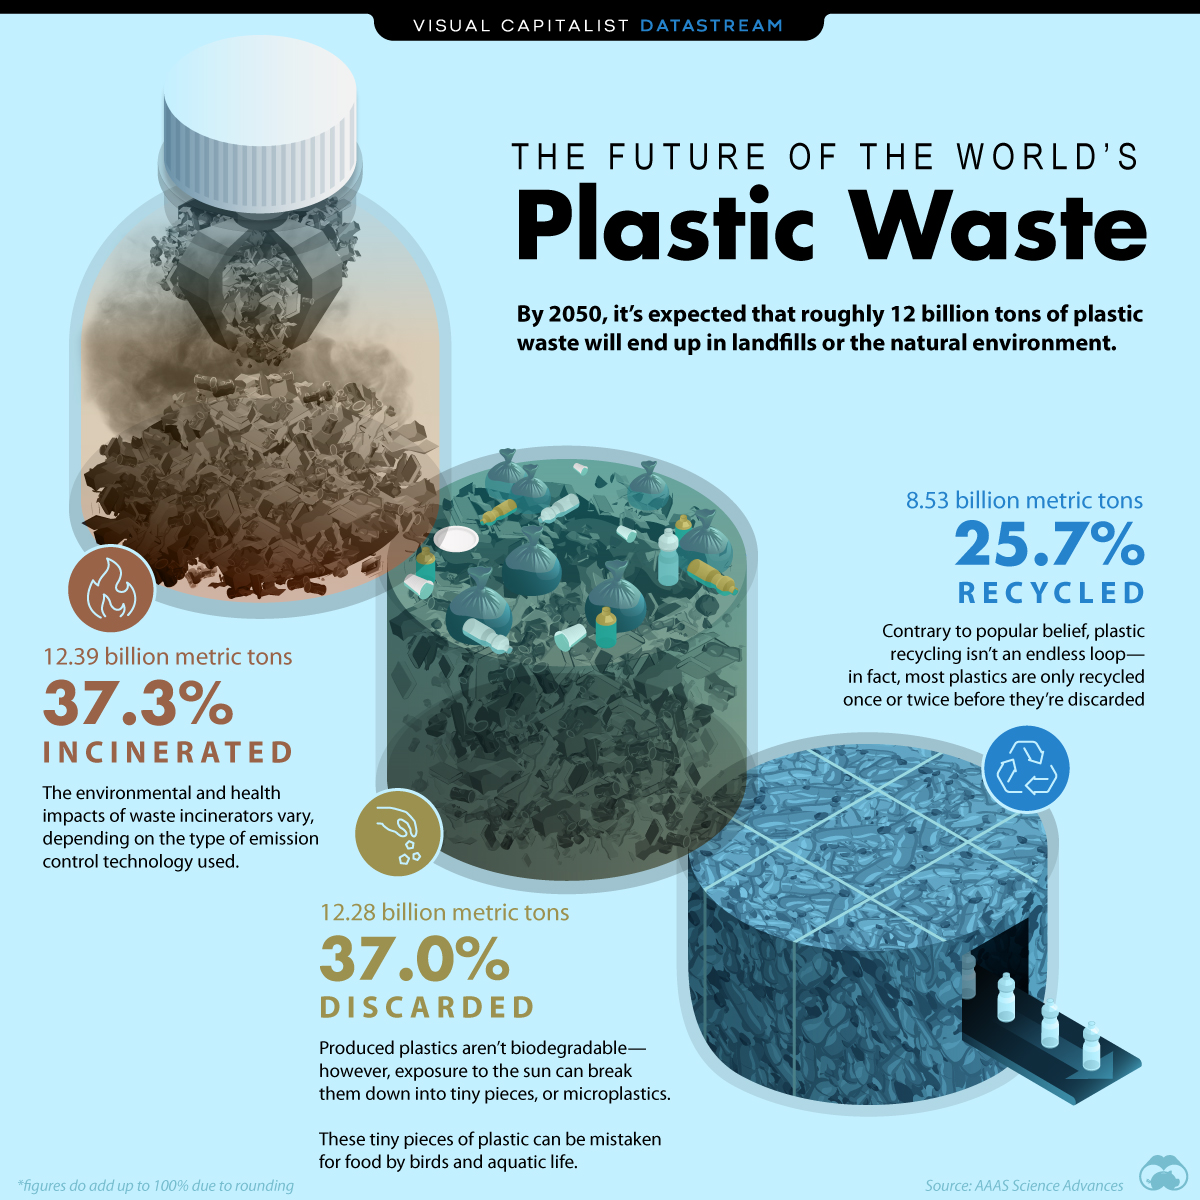 The World's Plastic Waste